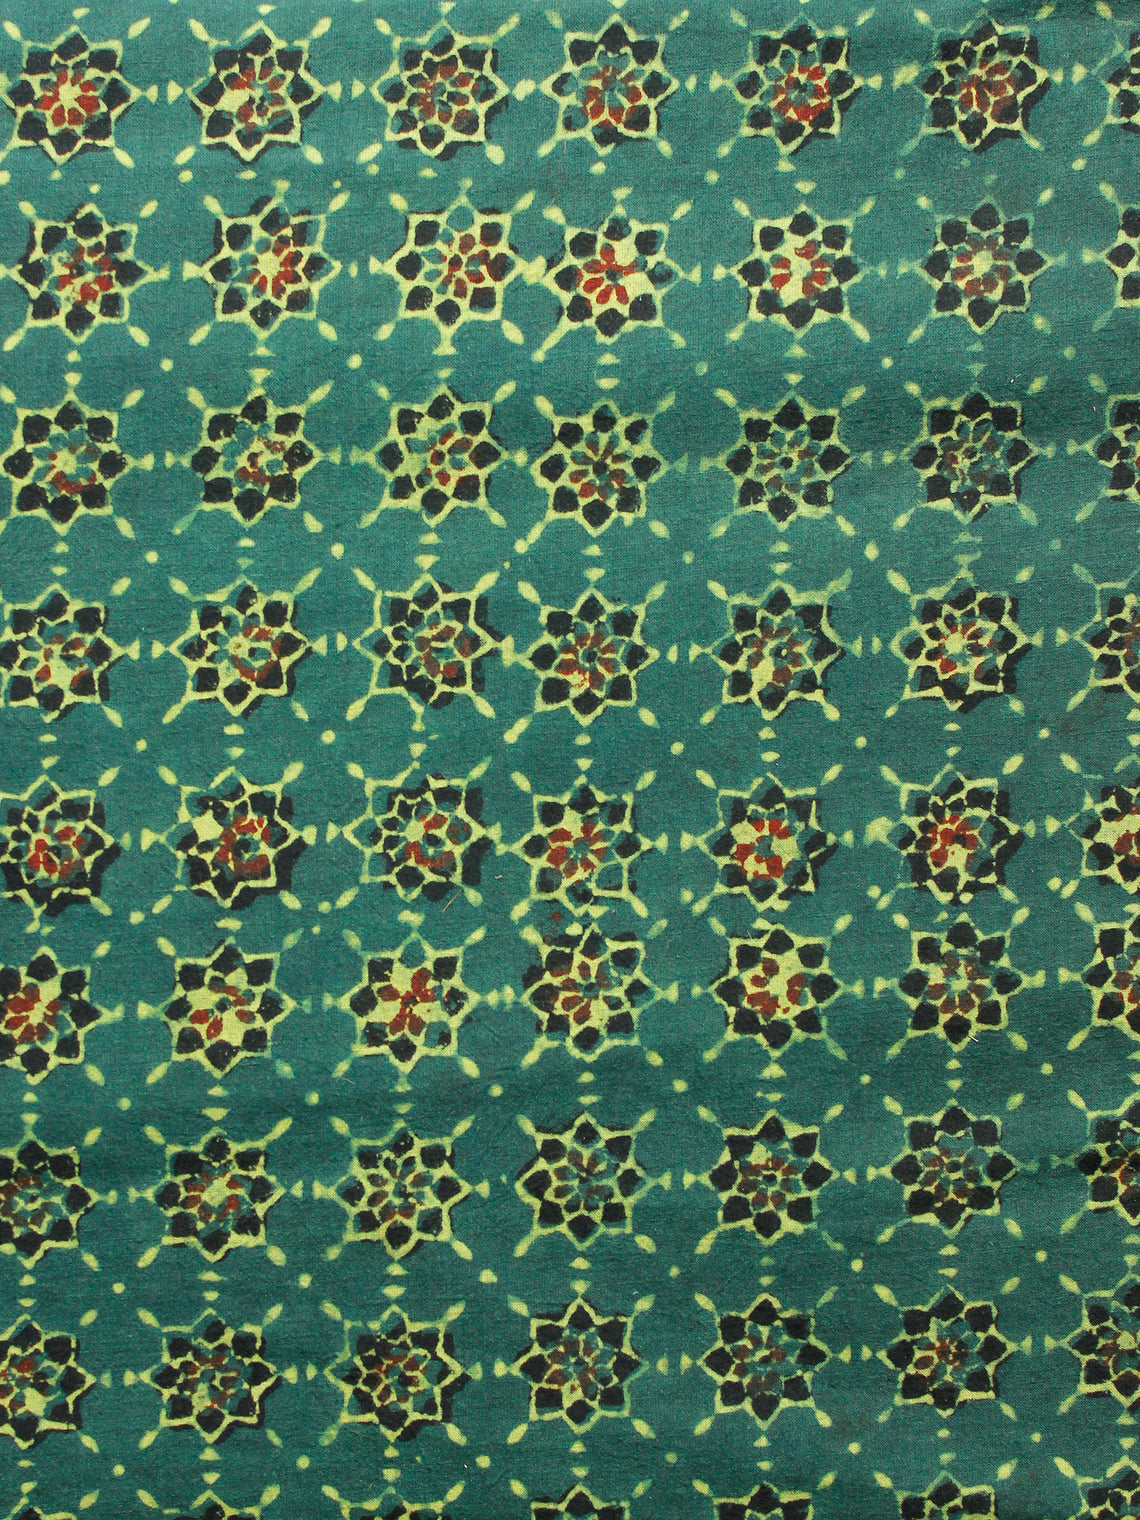 Green Mustard Black Red Ajrakh Hand Block Printed Cotton Fabric Per Meter - F003F1620